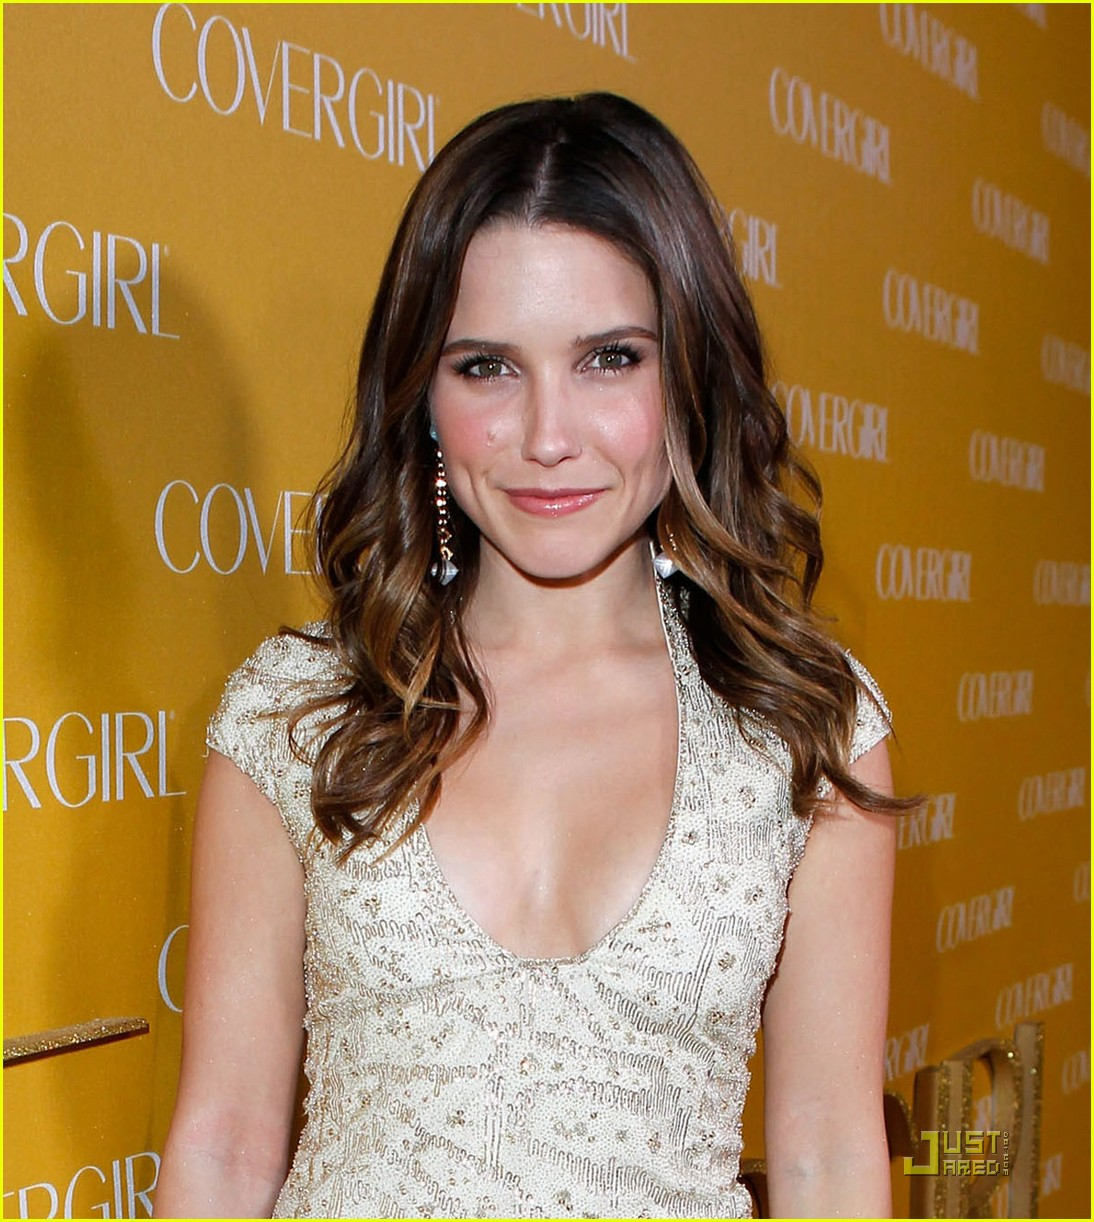 TV Actress Sophia Bush - age: 38